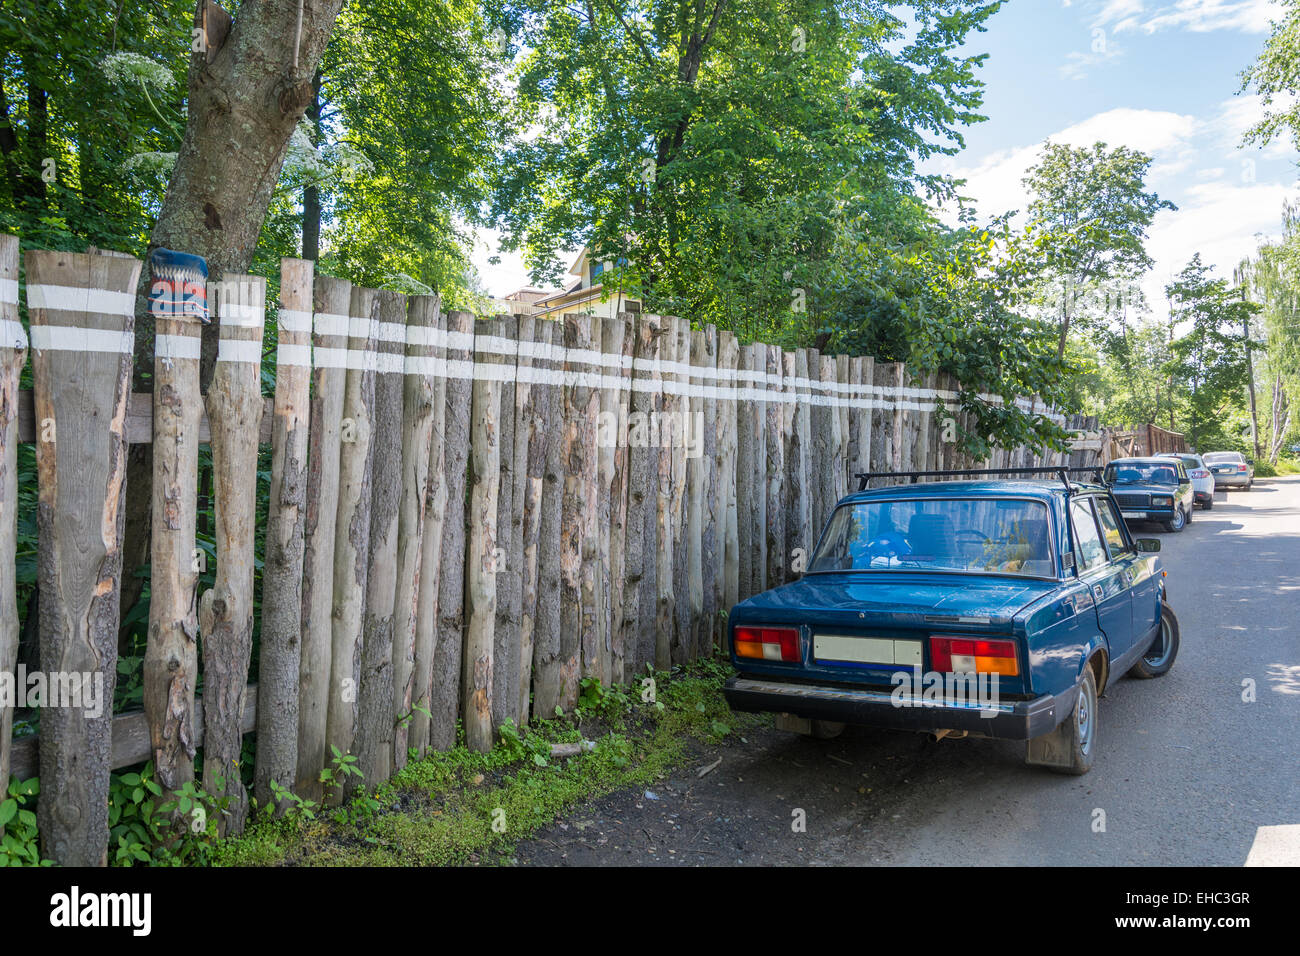 Double dividing line on an old wooden fence. - Stock Image